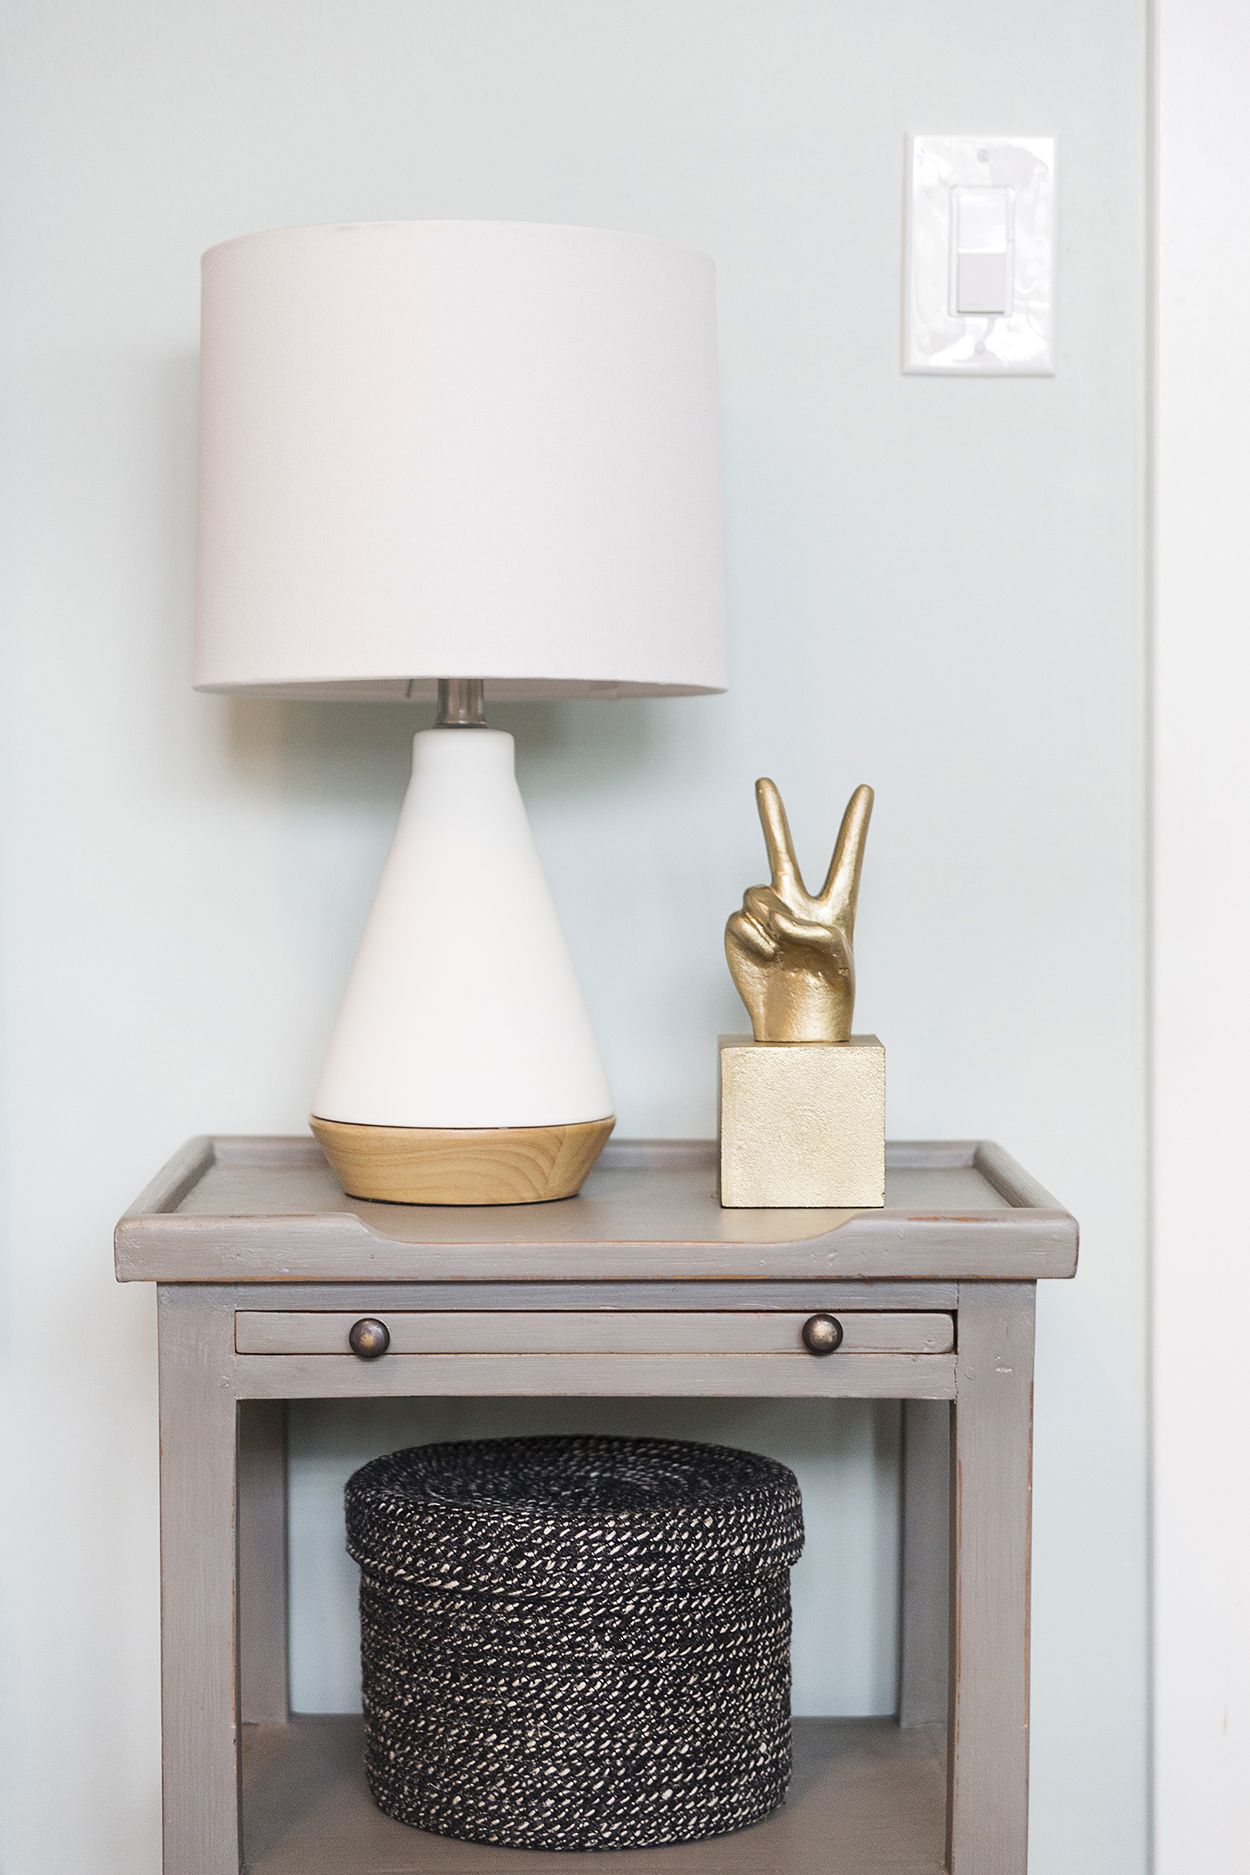 Night stand with a white lamp, gold peace hand and black basket